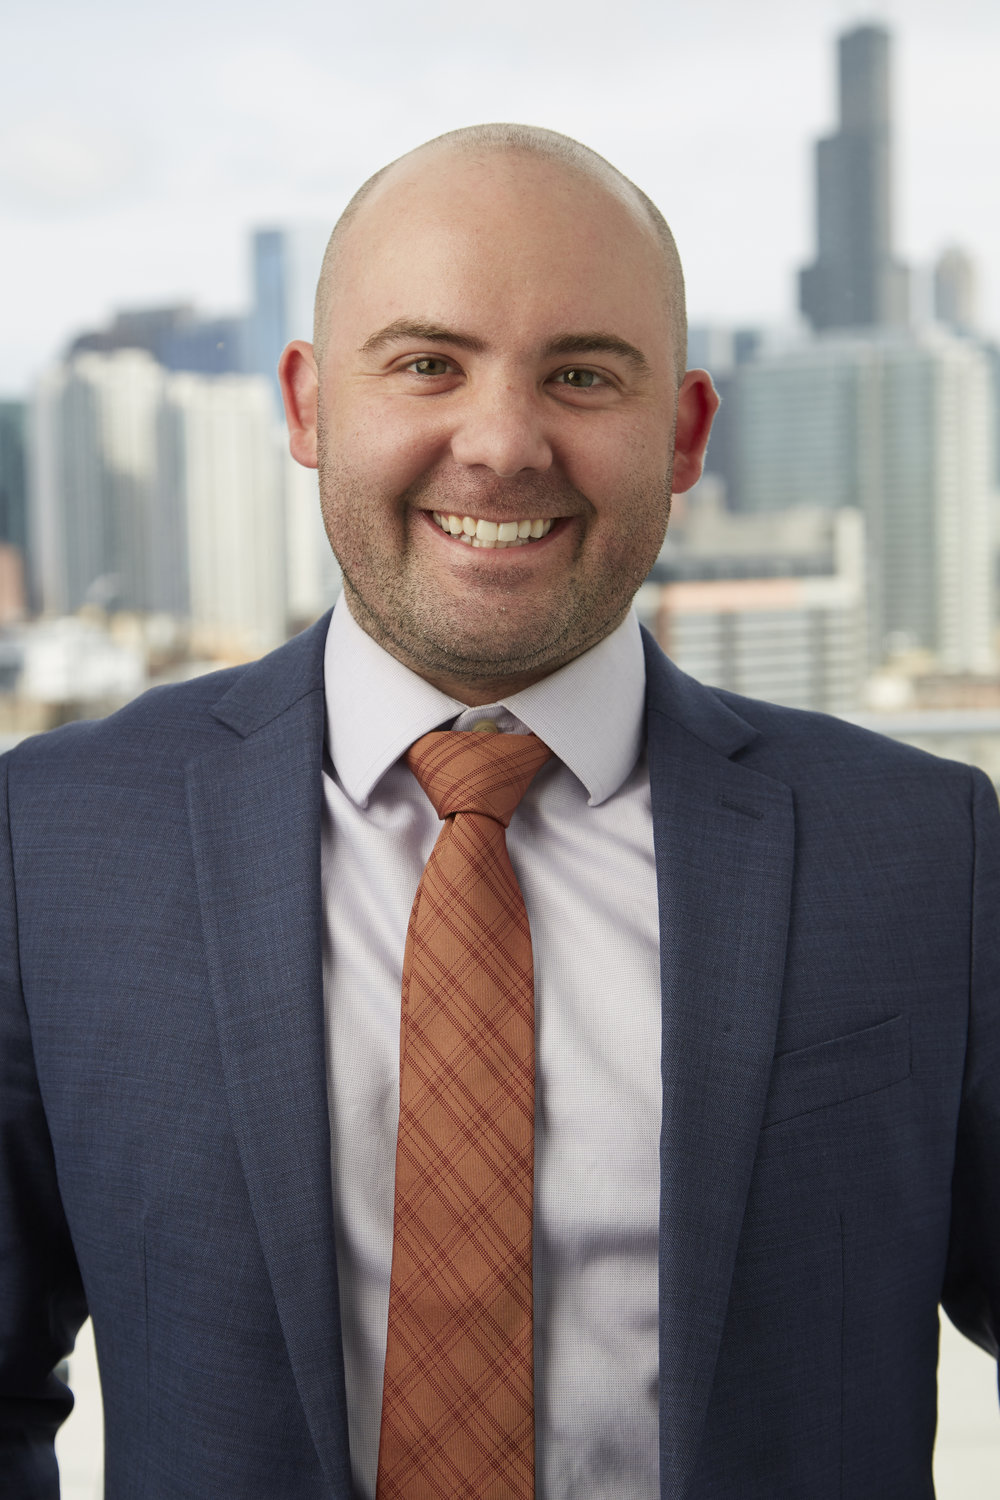 Erik Carlson - Erik is an experienced Realtor servicing the downtown Chicagoland rental and buying market. He has grown his business organically by providing a pleasant and relaxing renting experience and maintaining lasting relationships as they begin the process of home ownership.